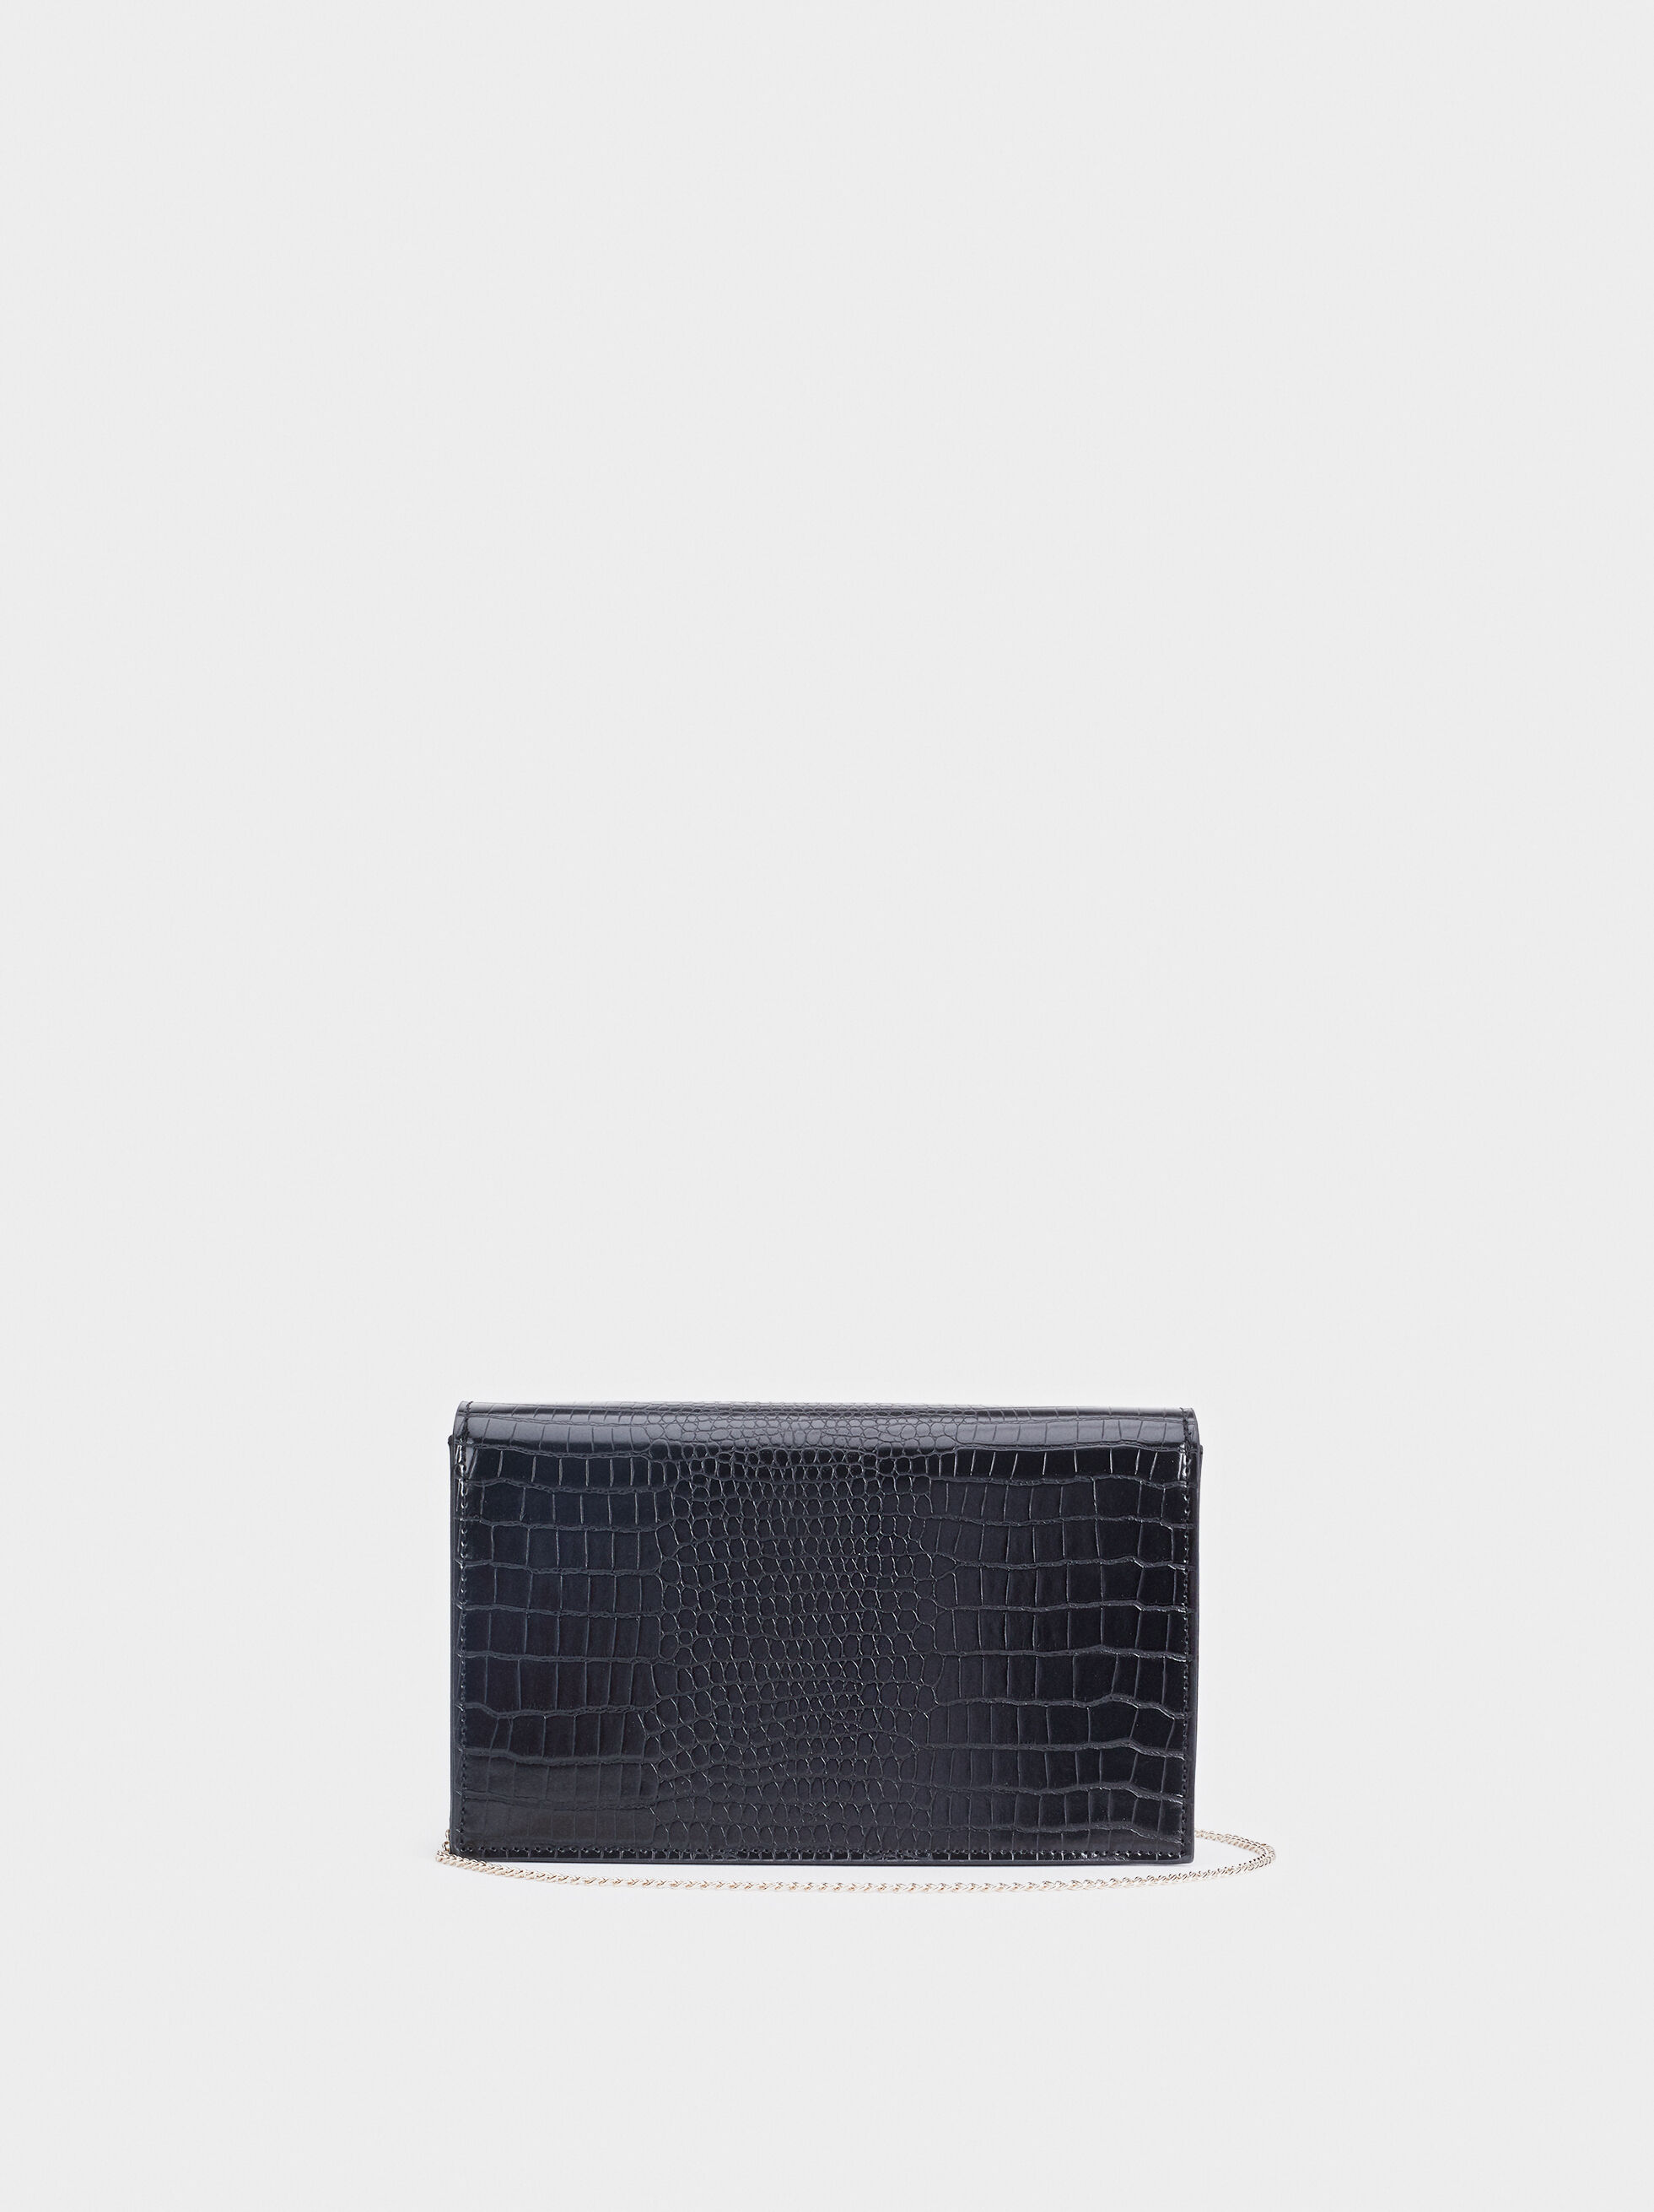 Embossed Animal Print Party Clutch, Black, hi-res